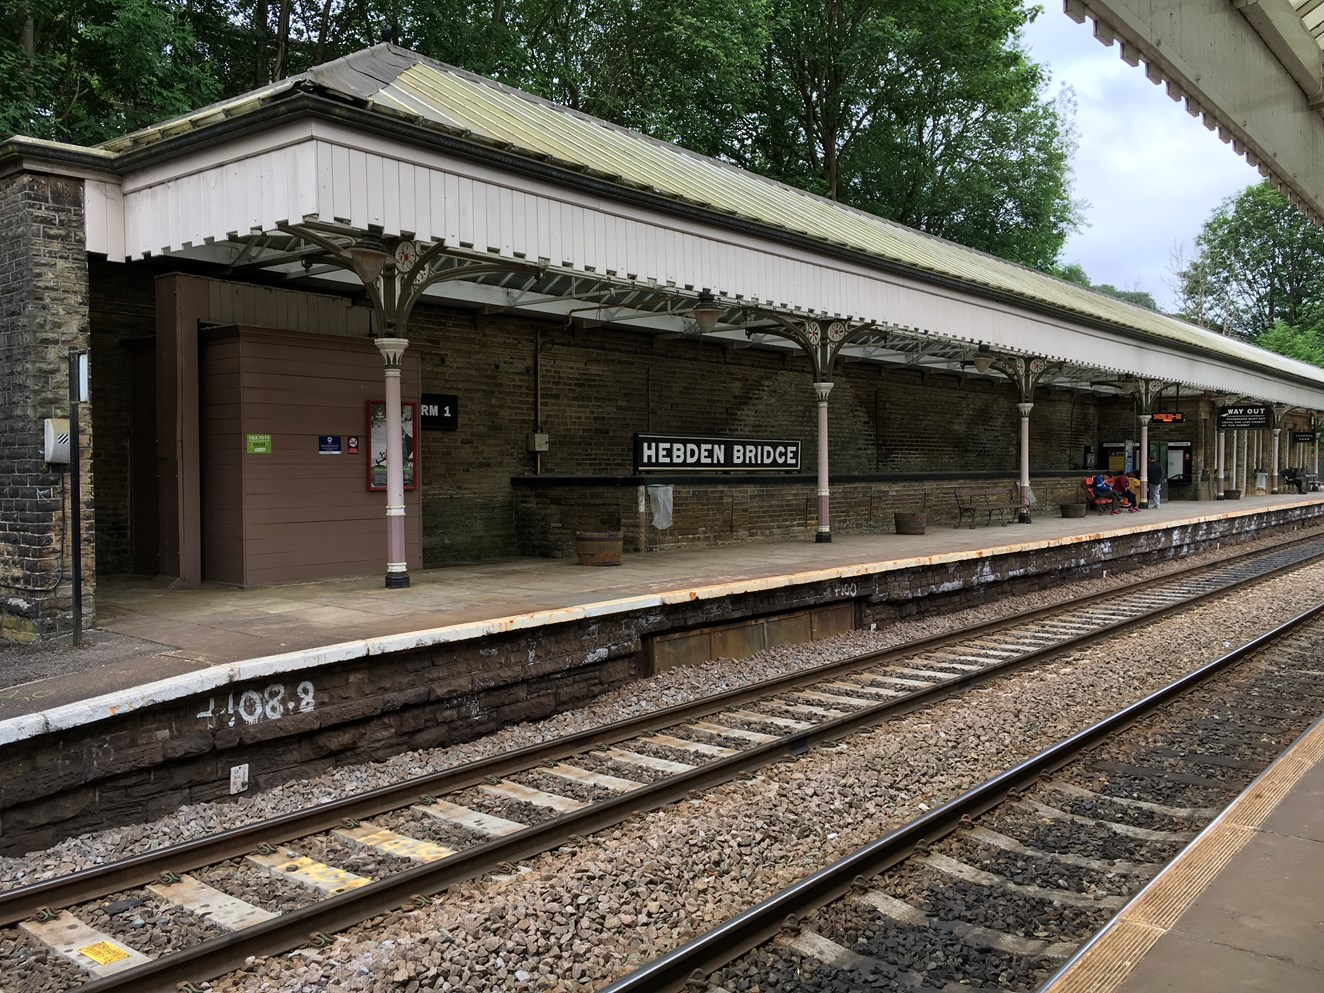 Project to improve accessibility at West Yorkshire station begins this week: Project to improve accessibility at West Yorkshire station begins this week